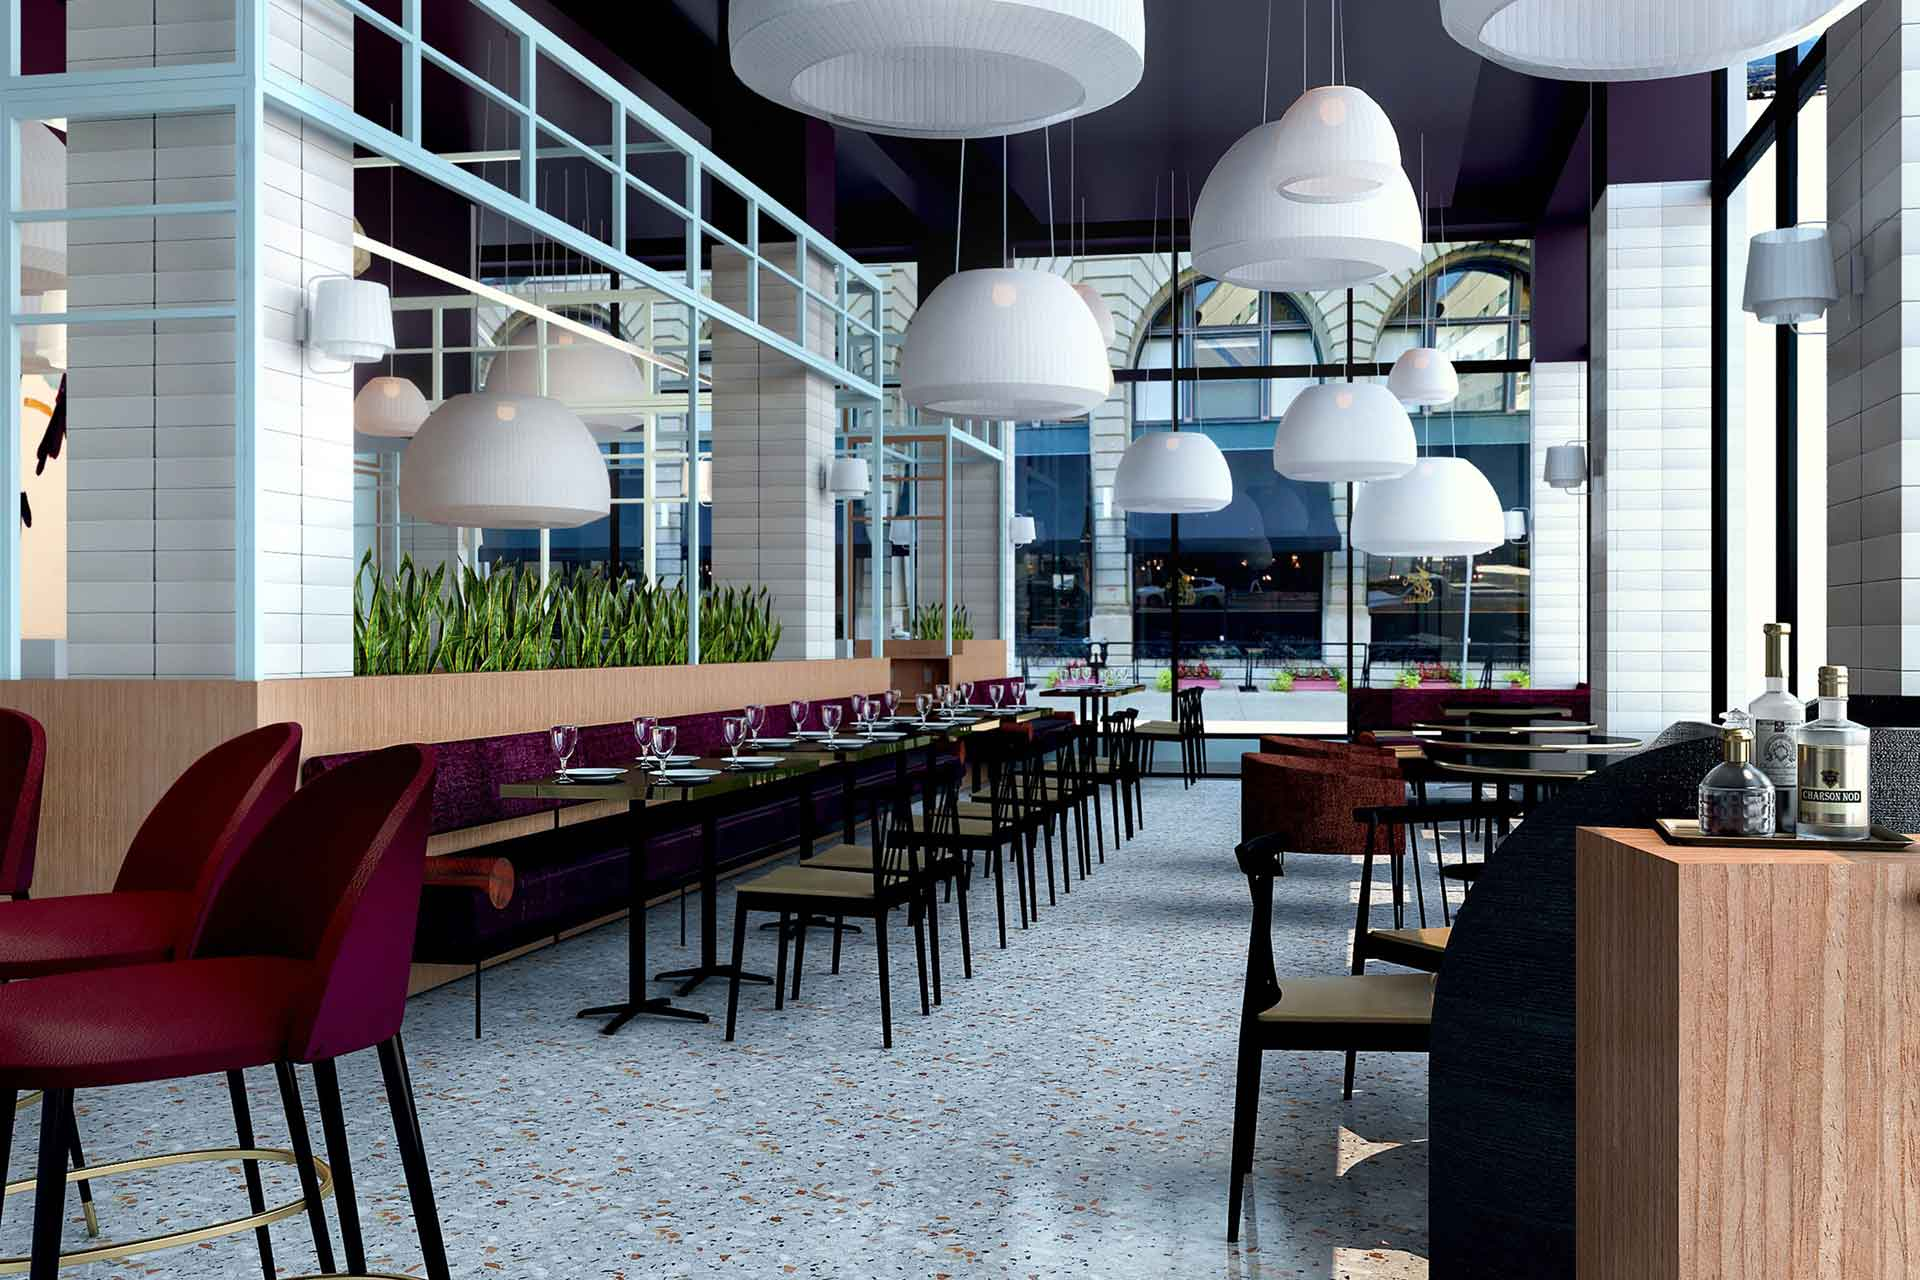 Khora will form the main F&B offer at The Kinley